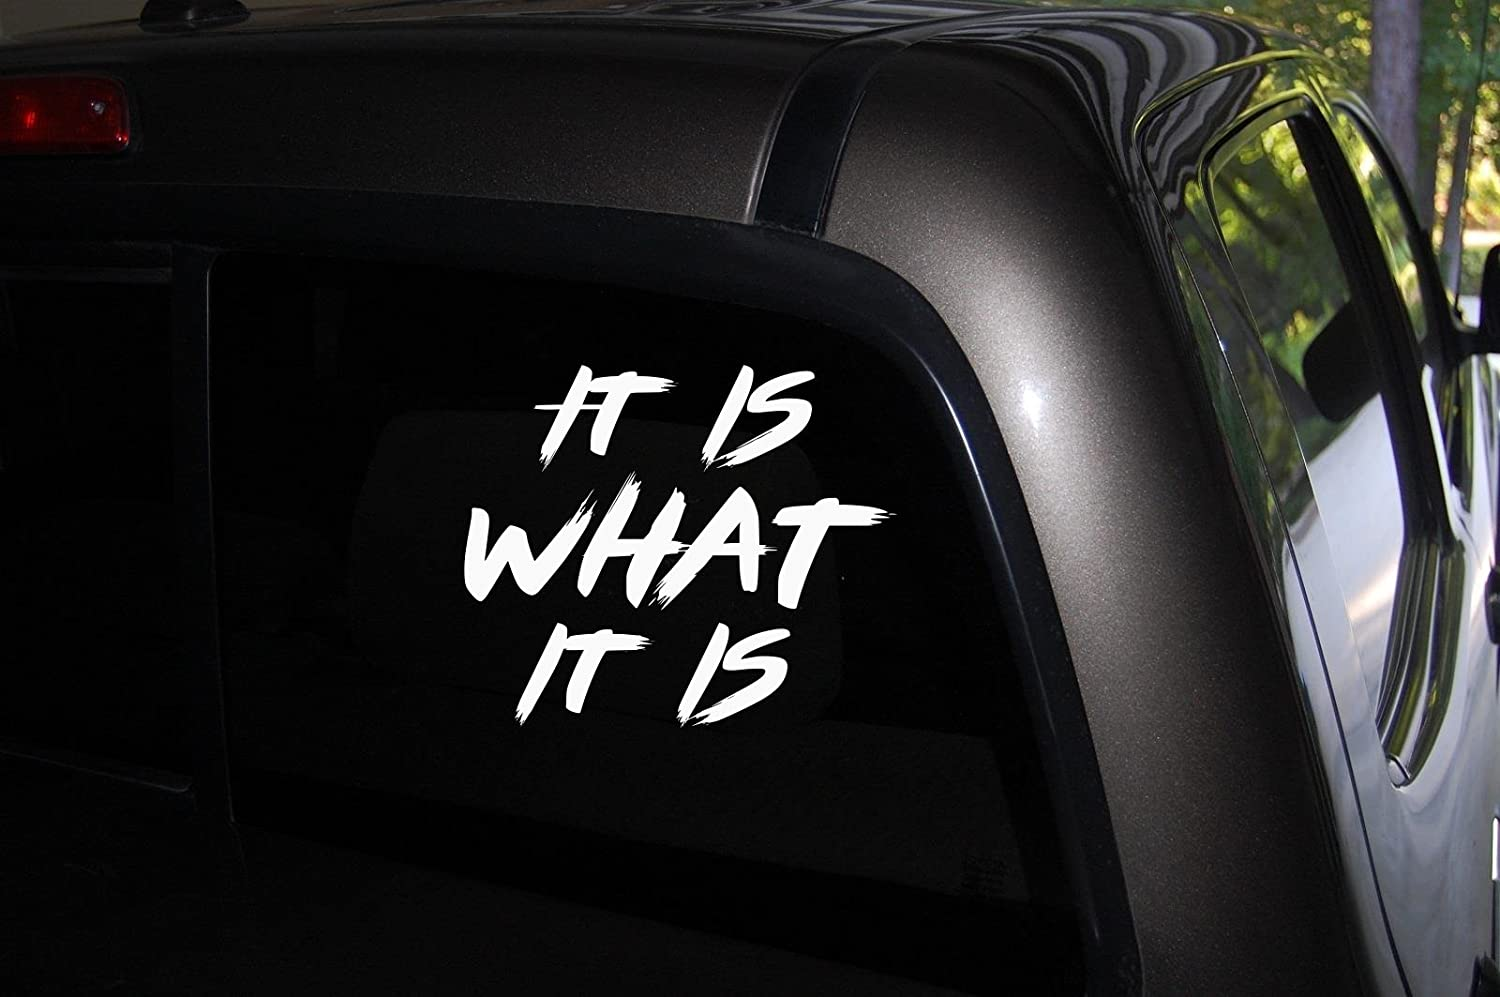 """Classy Vinyl Creations It is What it is Decals, Window Decal, auto Sticker, Decal Car Truck Automotive Window Decal,Black or White Decal, Bumper Sticker 5"""" H X 5"""" W"""